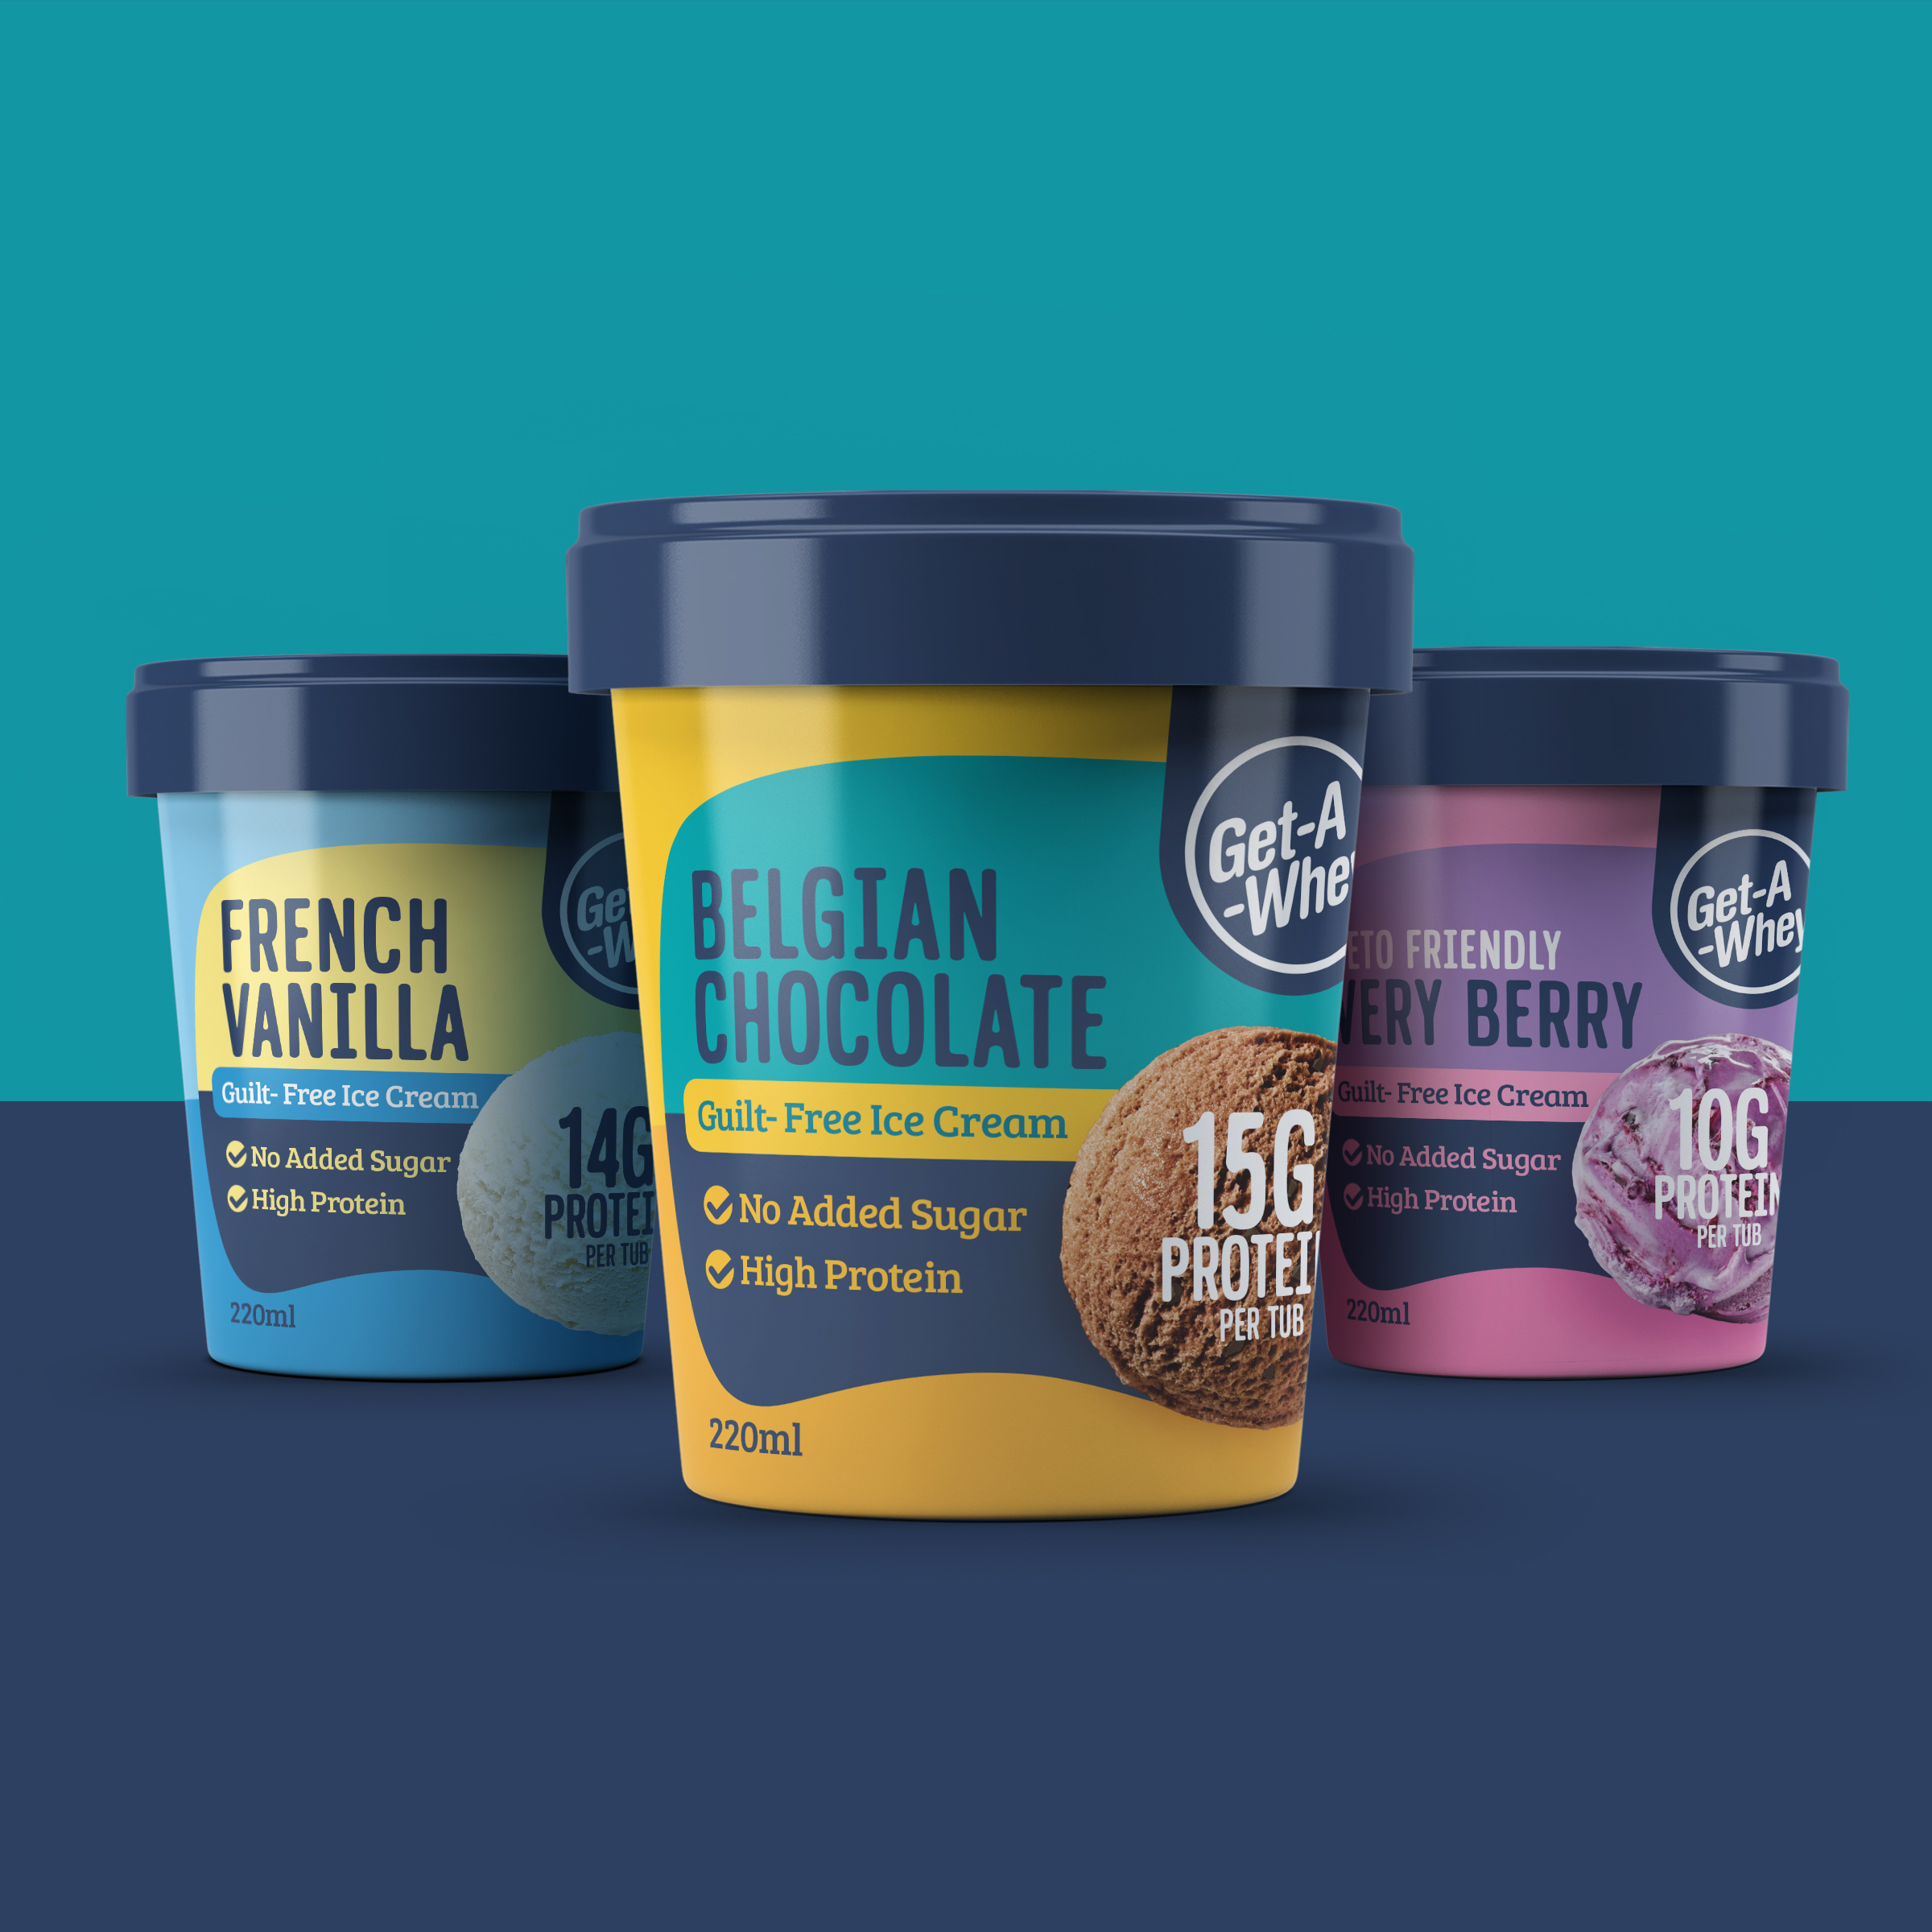 Branding and Packaging Redesign for a Protein Ice Cream Brand